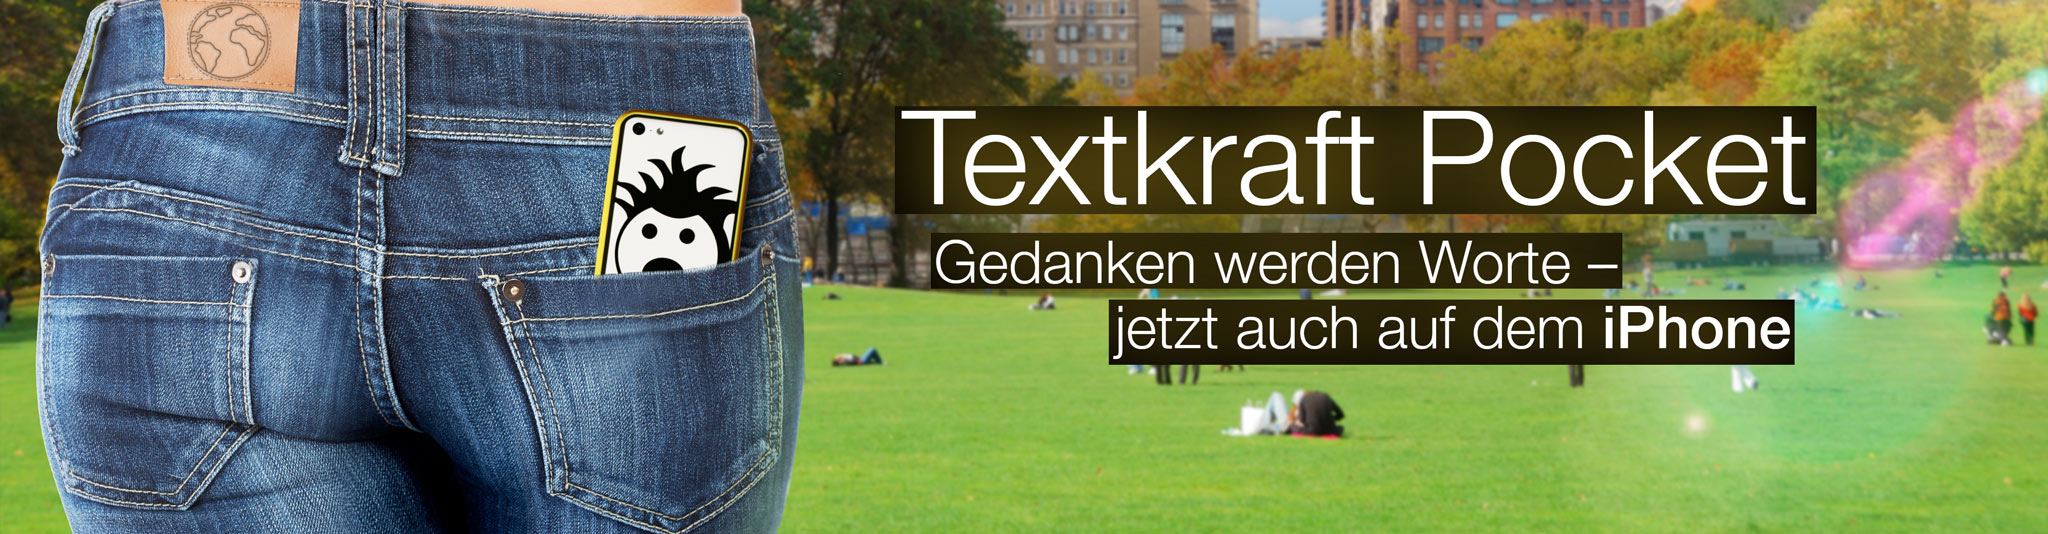 Textkraft Pocket für das iPhone.